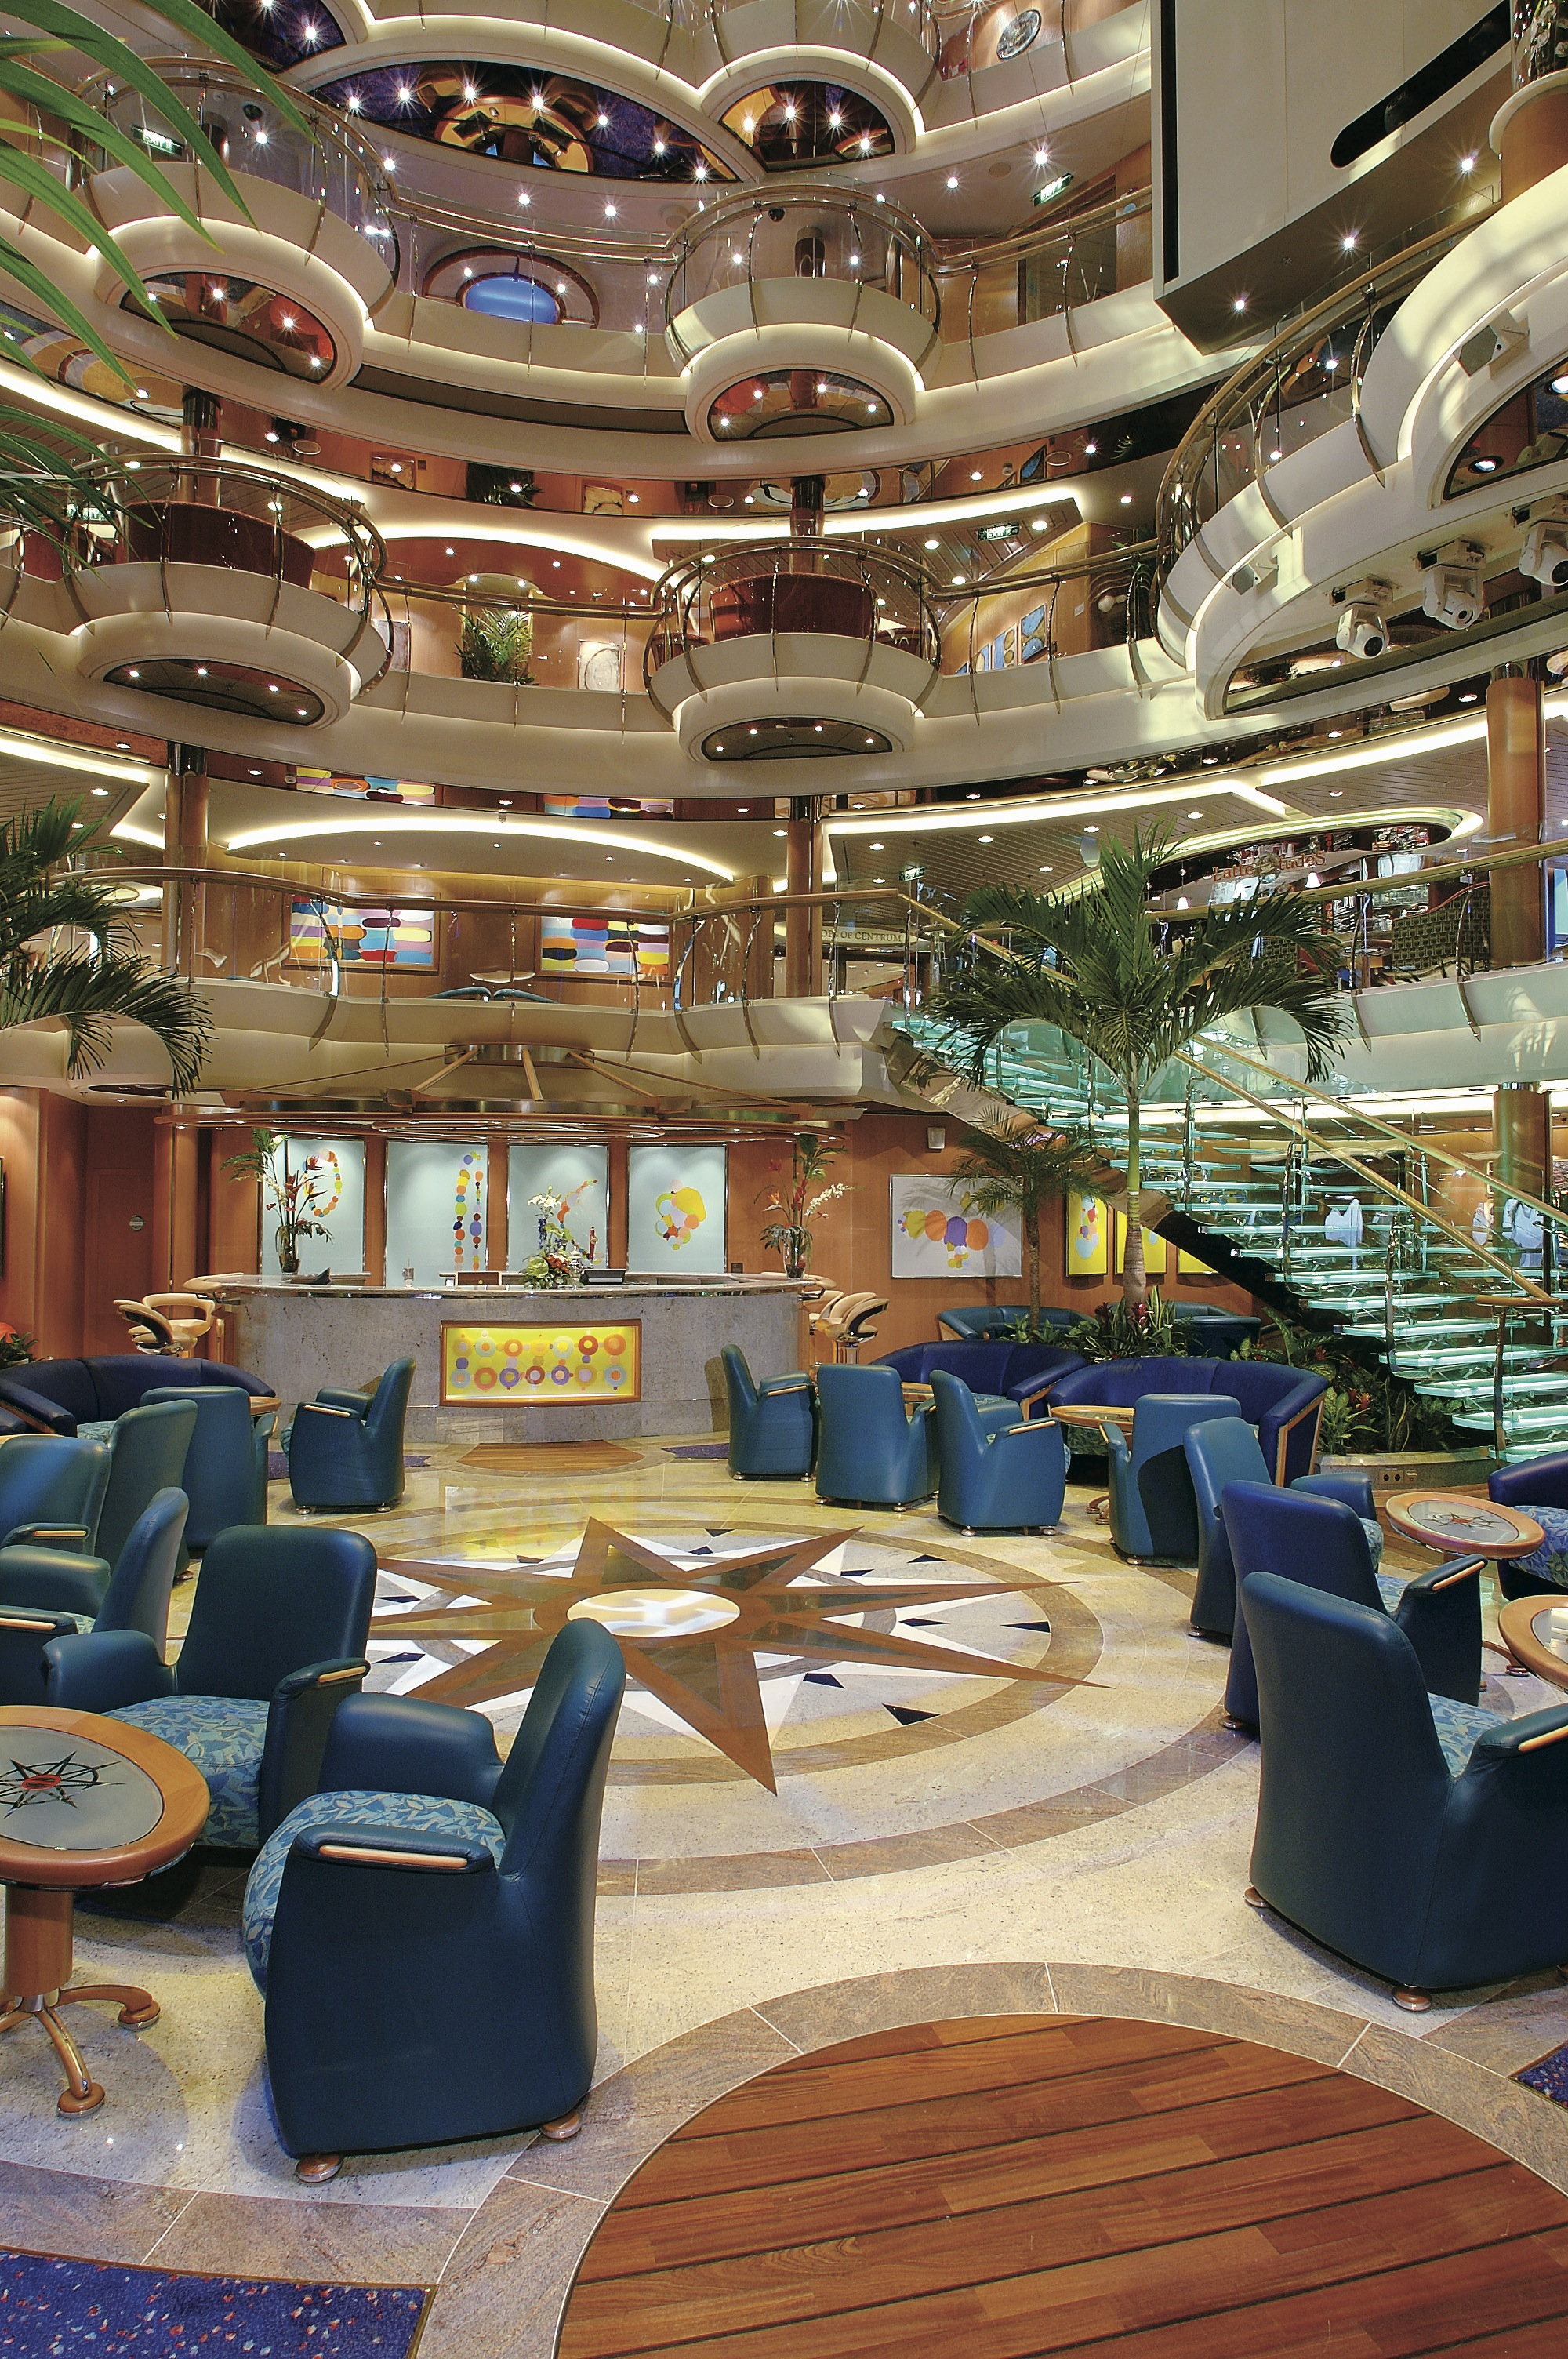 Royal Caribbean International Jewel of the Seas Interior Centrum 2.jpeg